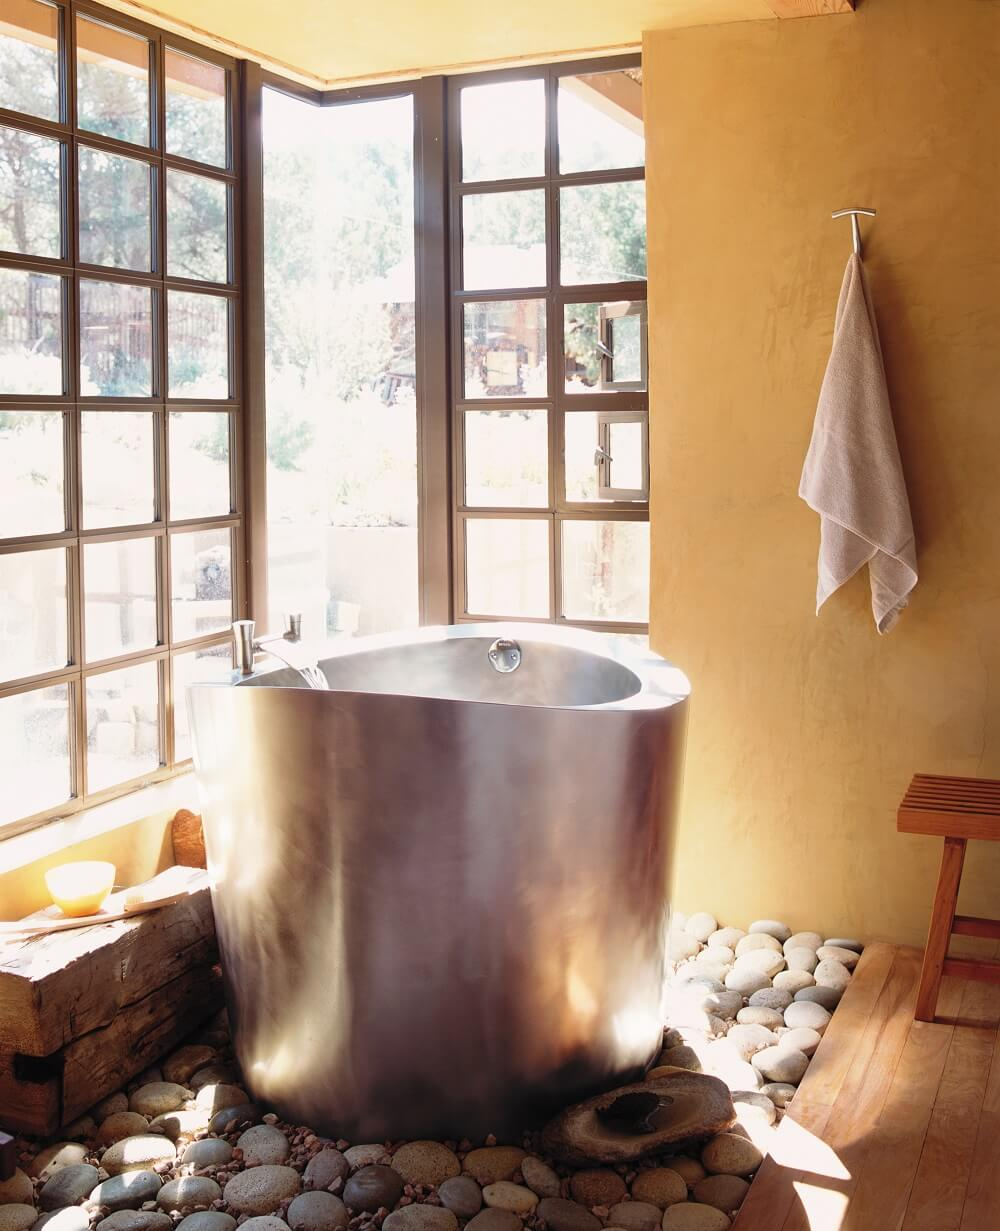 Fine Japanese Soaking Tubs Japanese Baths Outdoor Soaking Tub Beutiful Home Inspiration Semekurdistantinfo